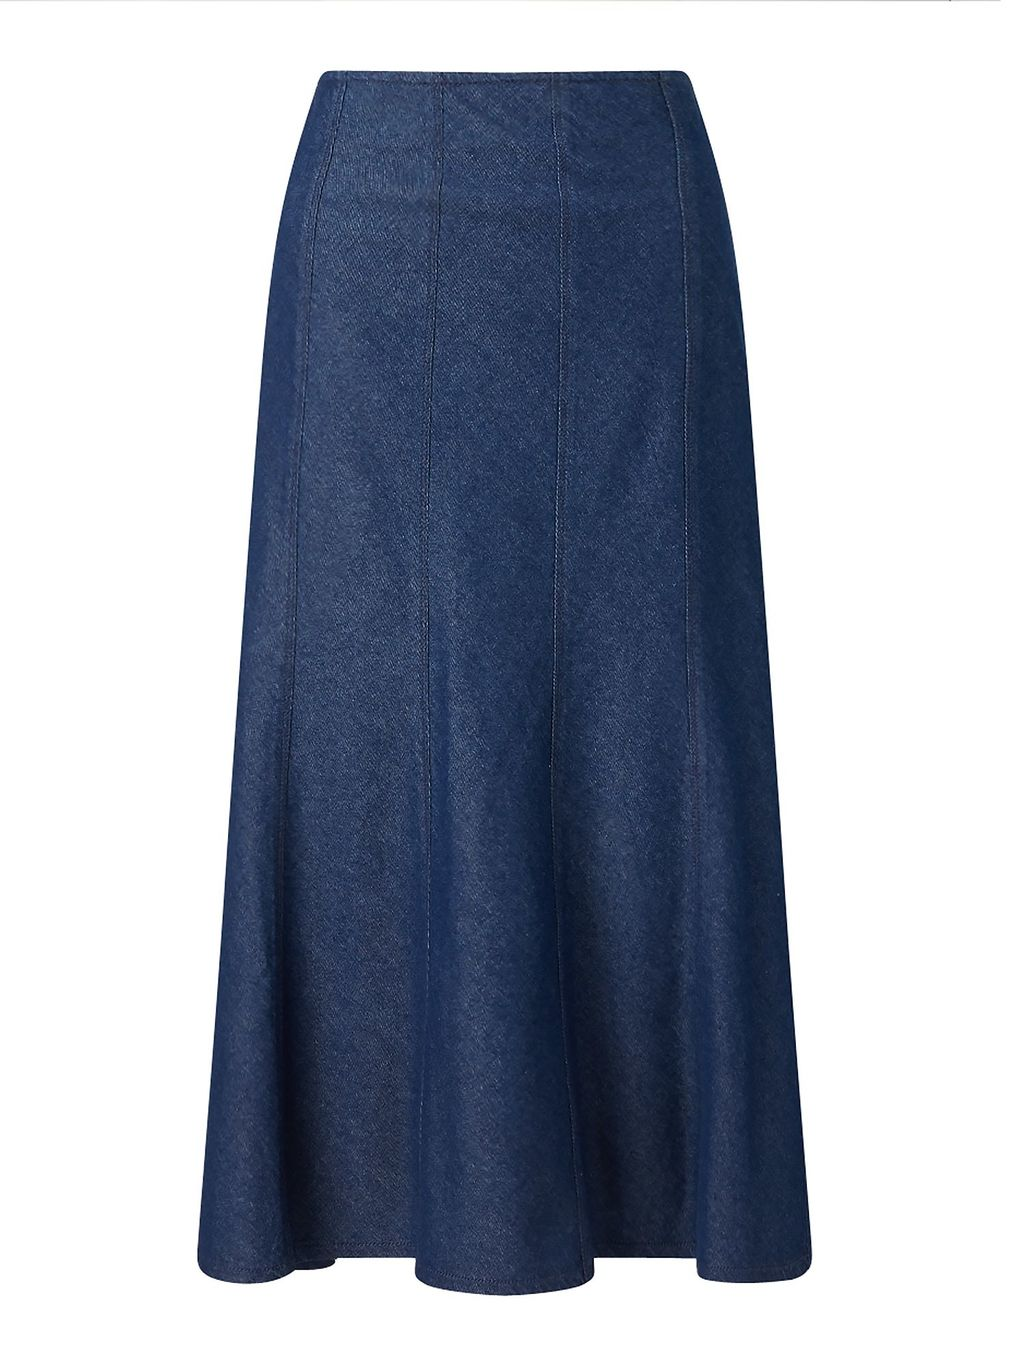 Denim Panel Skirt, Blue - length: calf length; pattern: plain; style: full/prom skirt; fit: loose/voluminous; waist: high rise; predominant colour: navy; occasions: casual, creative work; fibres: cotton - 100%; hip detail: soft pleats at hip/draping at hip/flared at hip; texture group: denim; pattern type: fabric; season: s/s 2016; wardrobe: basic